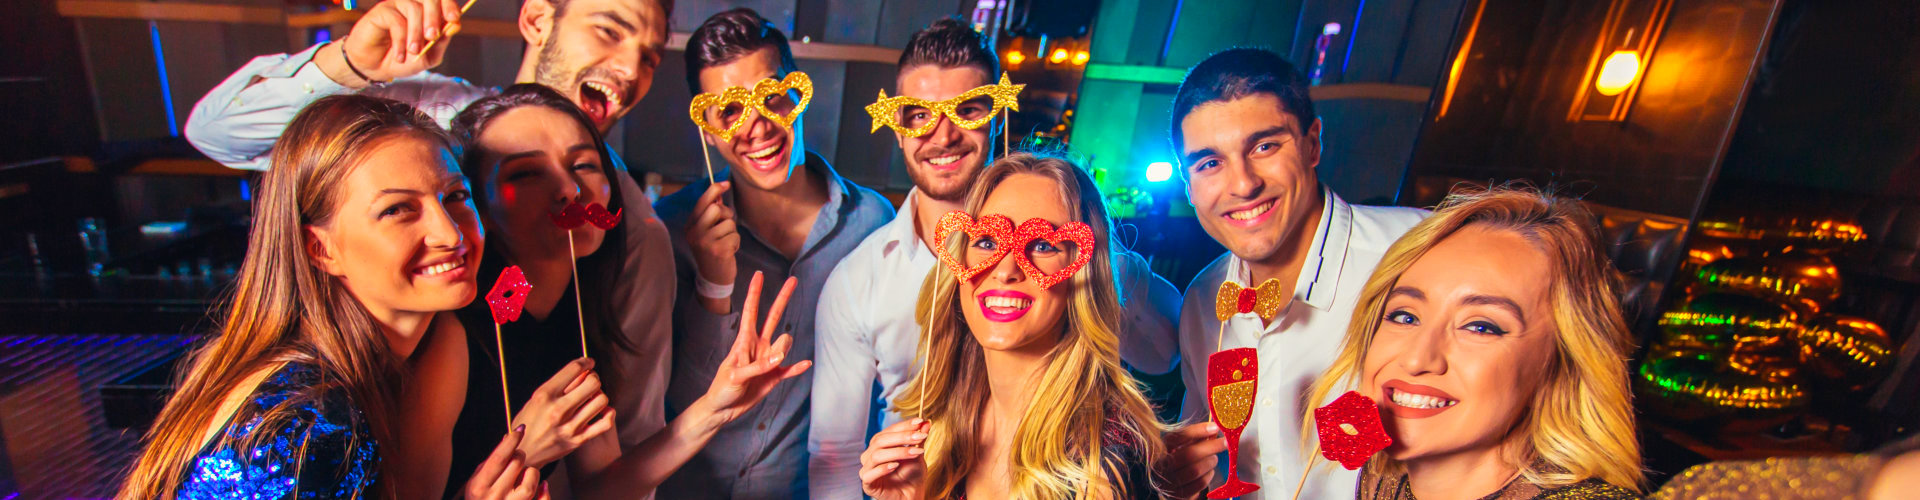 a group of people in a party doing selfie